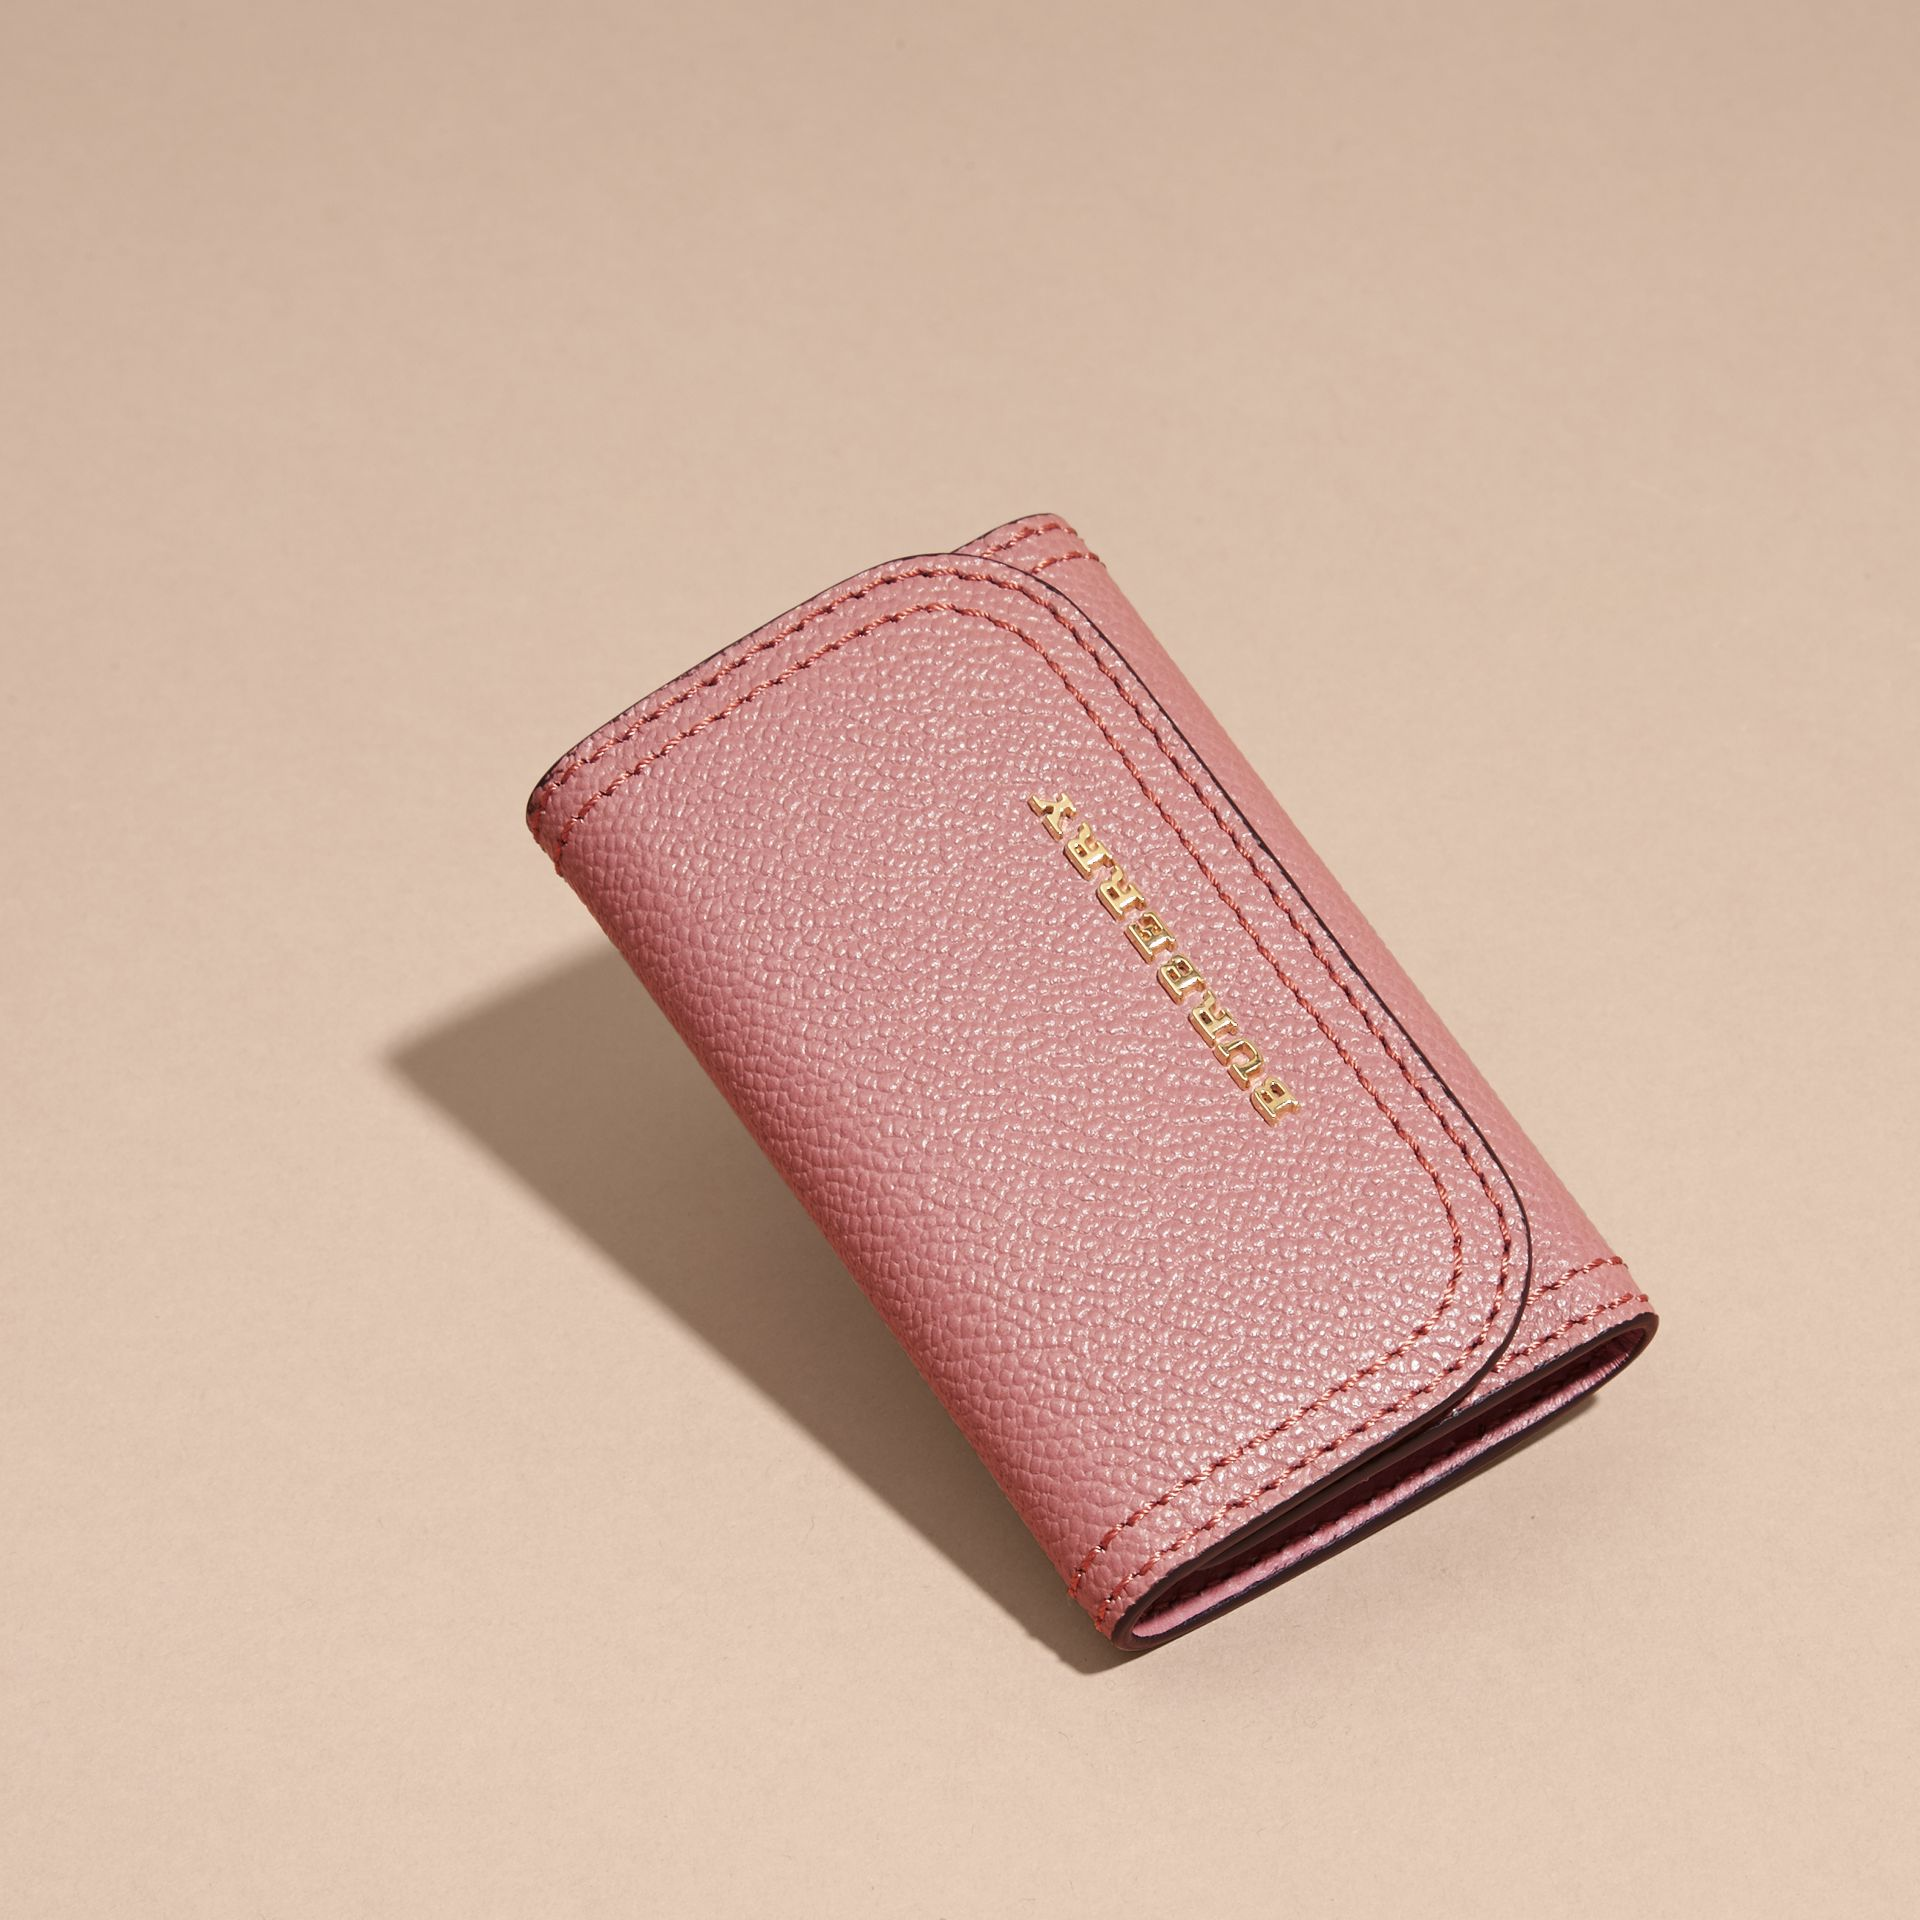 Grainy Leather Key Holder in Dusty Pink - Women | Burberry Canada - gallery image 3